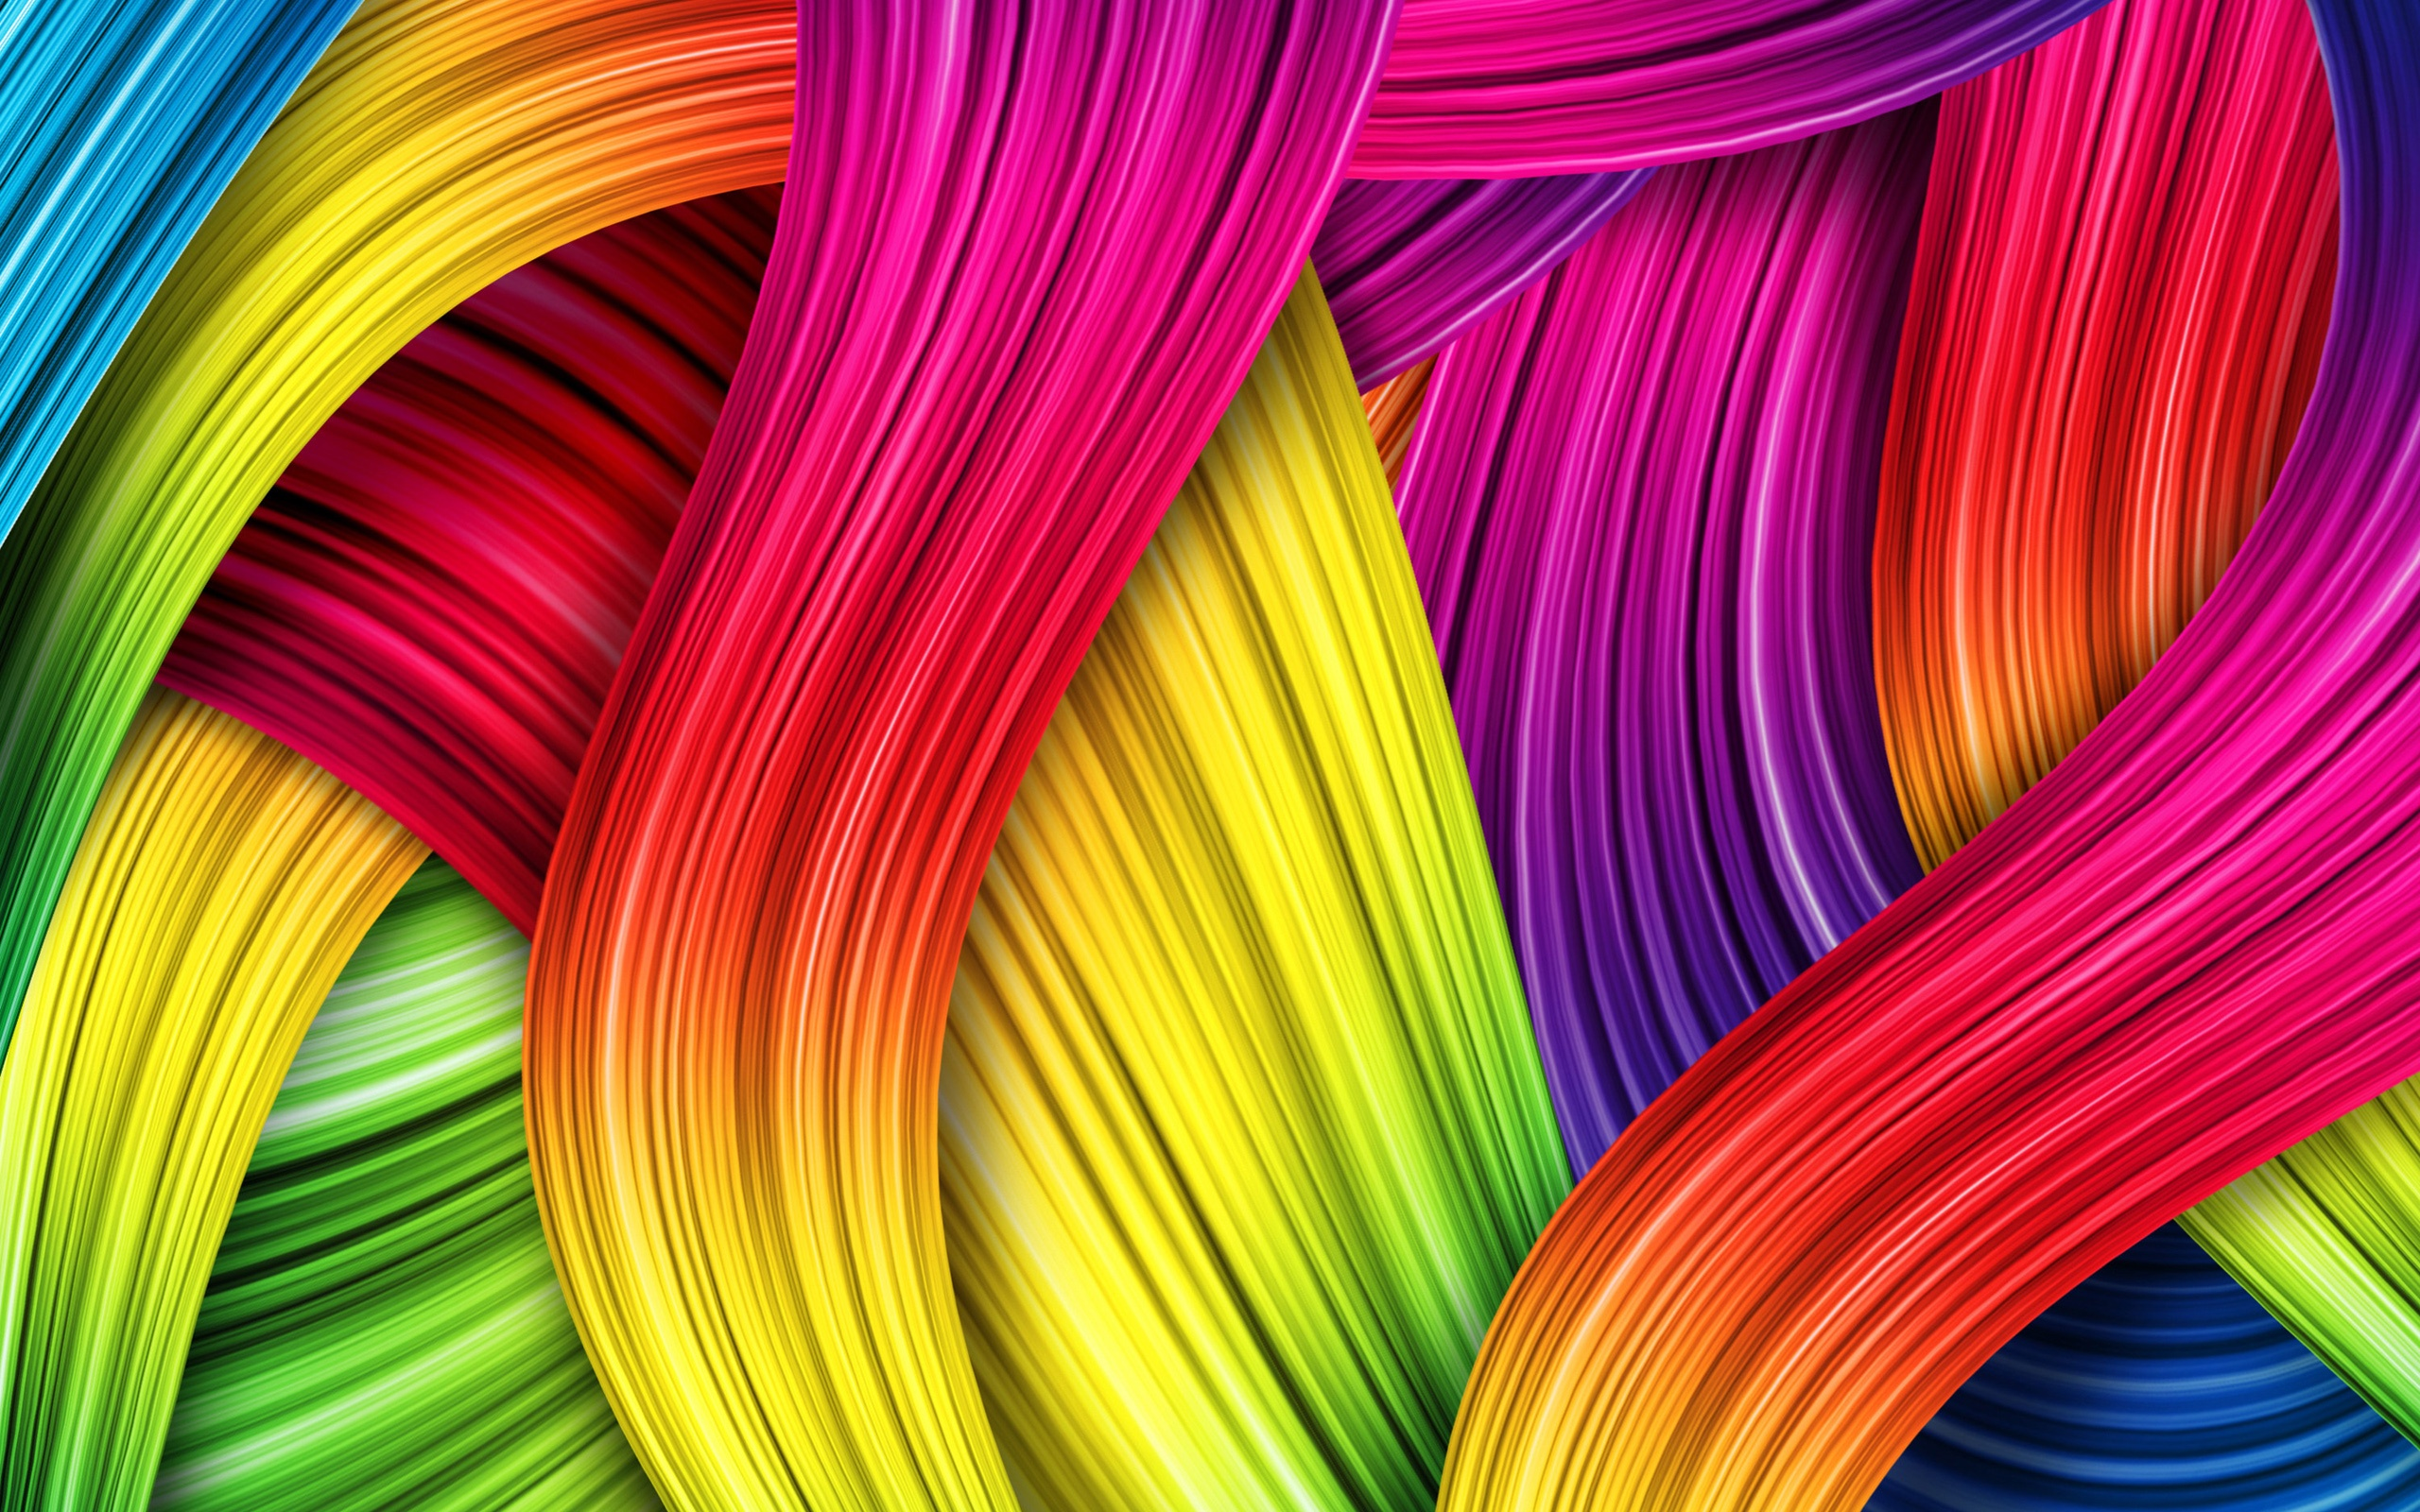 Wallpaper Abstract Colors Colorful Background 2560x1600 Hd